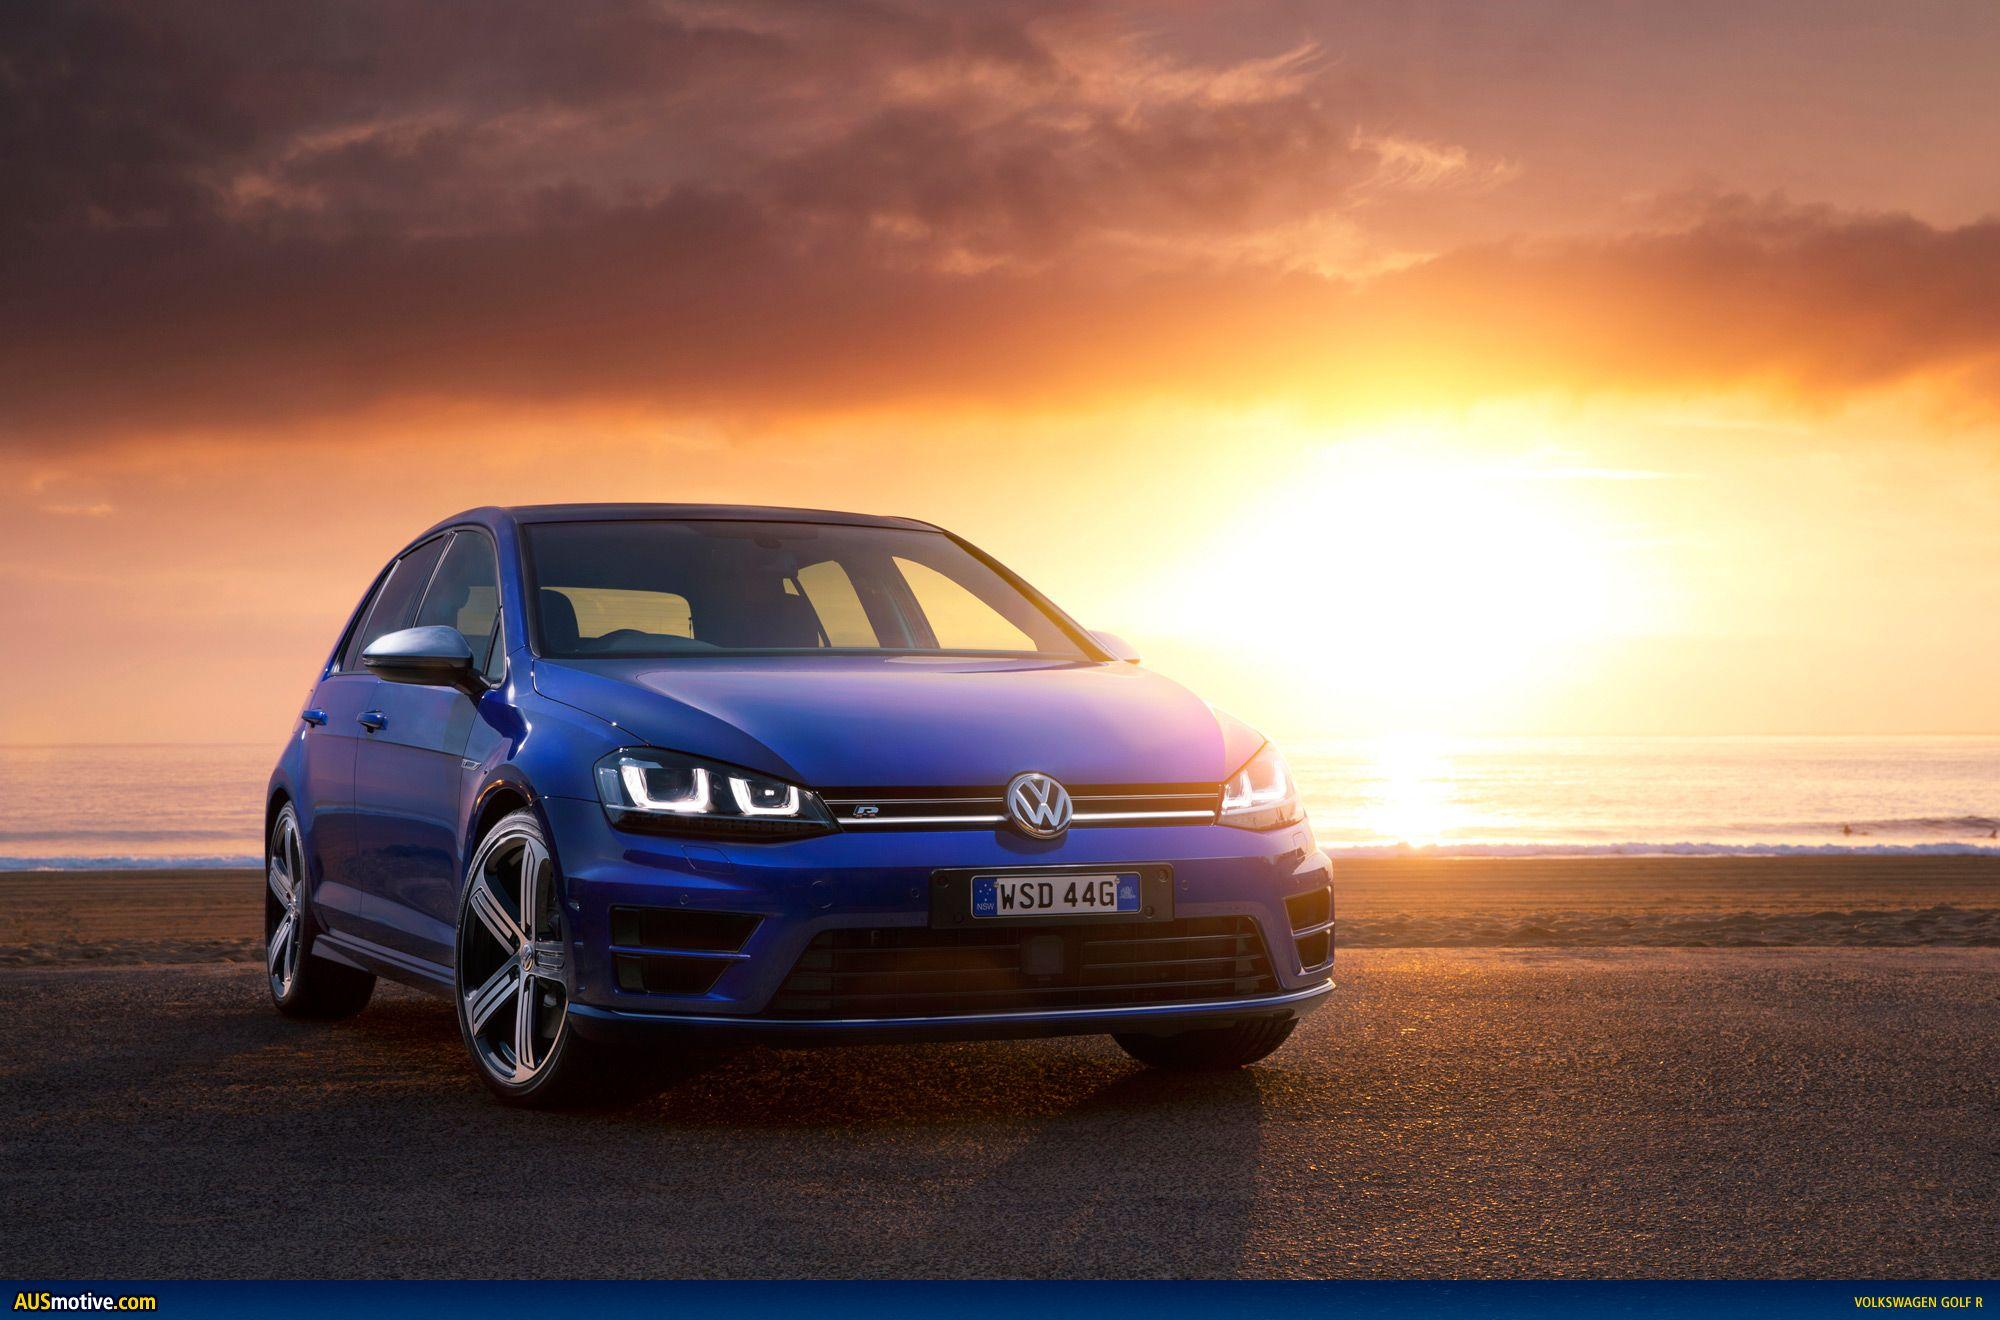 Volkswagen Golf R Wallpapers and Background Images - stmed.net